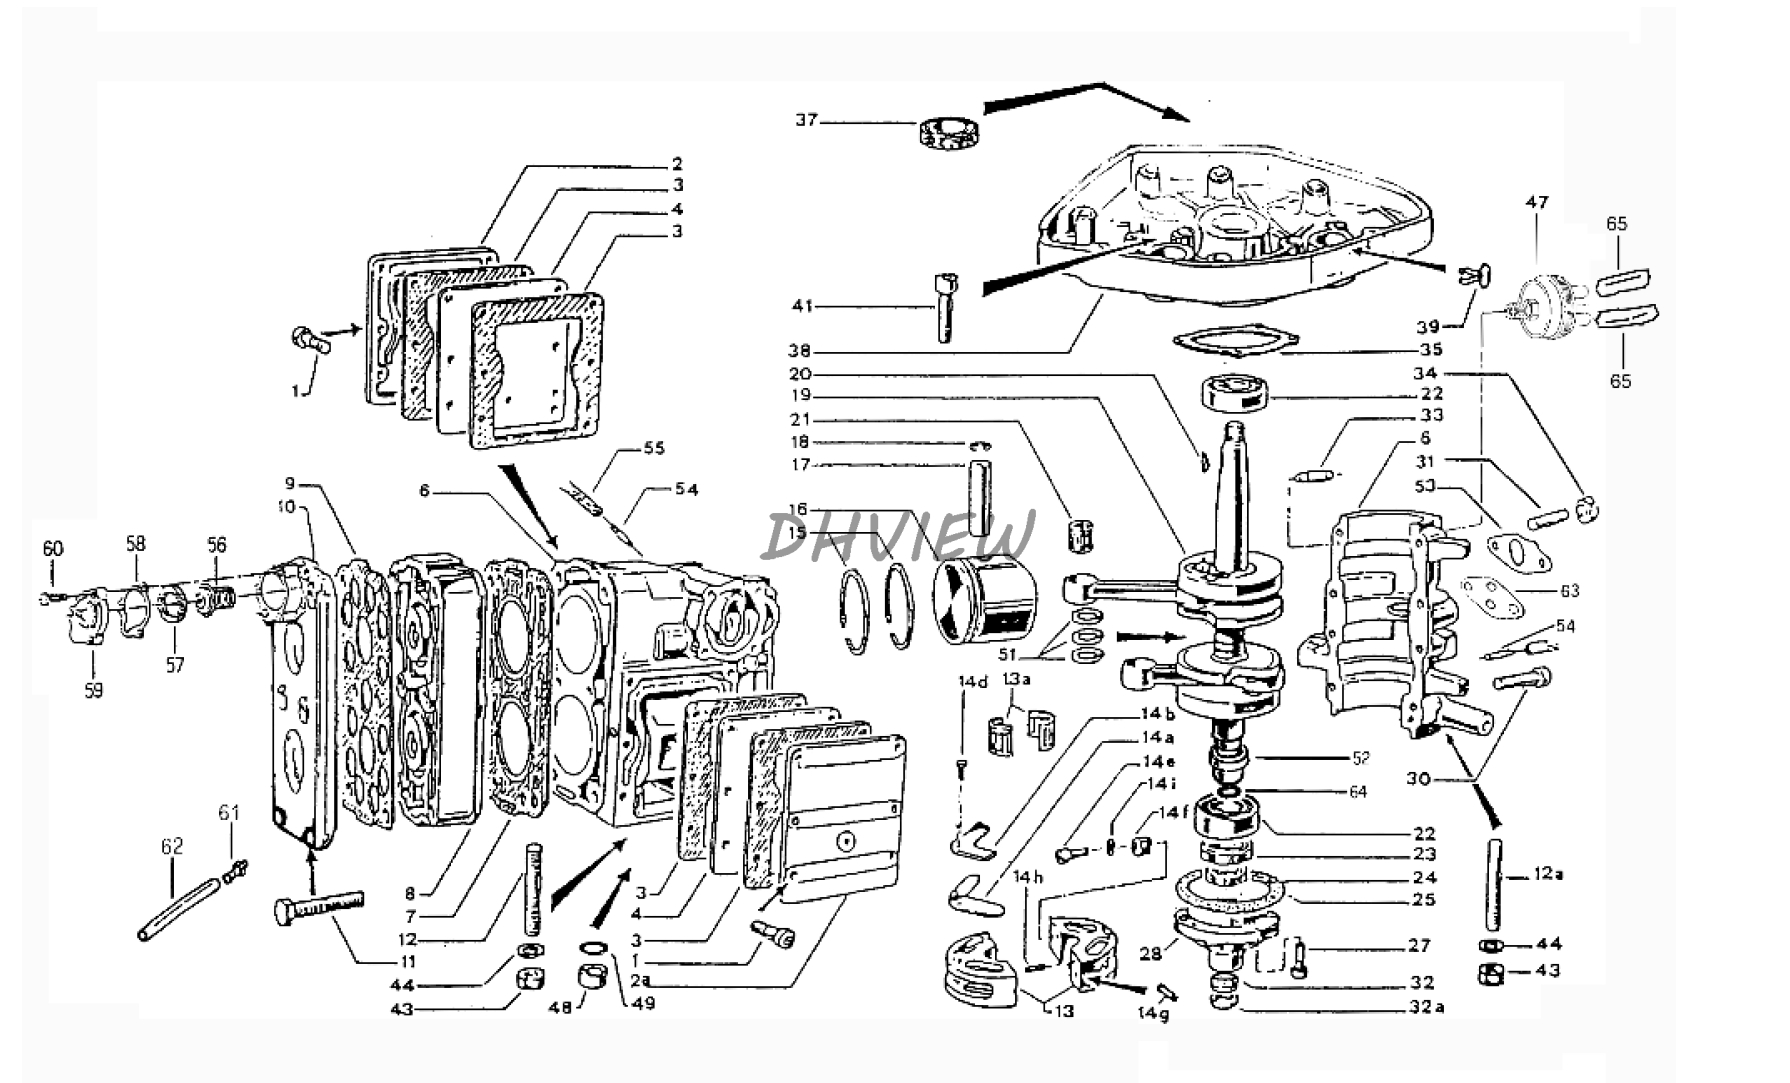 aftermarket 09263 27005 rn 27x37x22 brg part for suzuki outboard diagram of 1987 dt65crsh suzuki marine outboard transmission diagram [ 1790 x 1083 Pixel ]